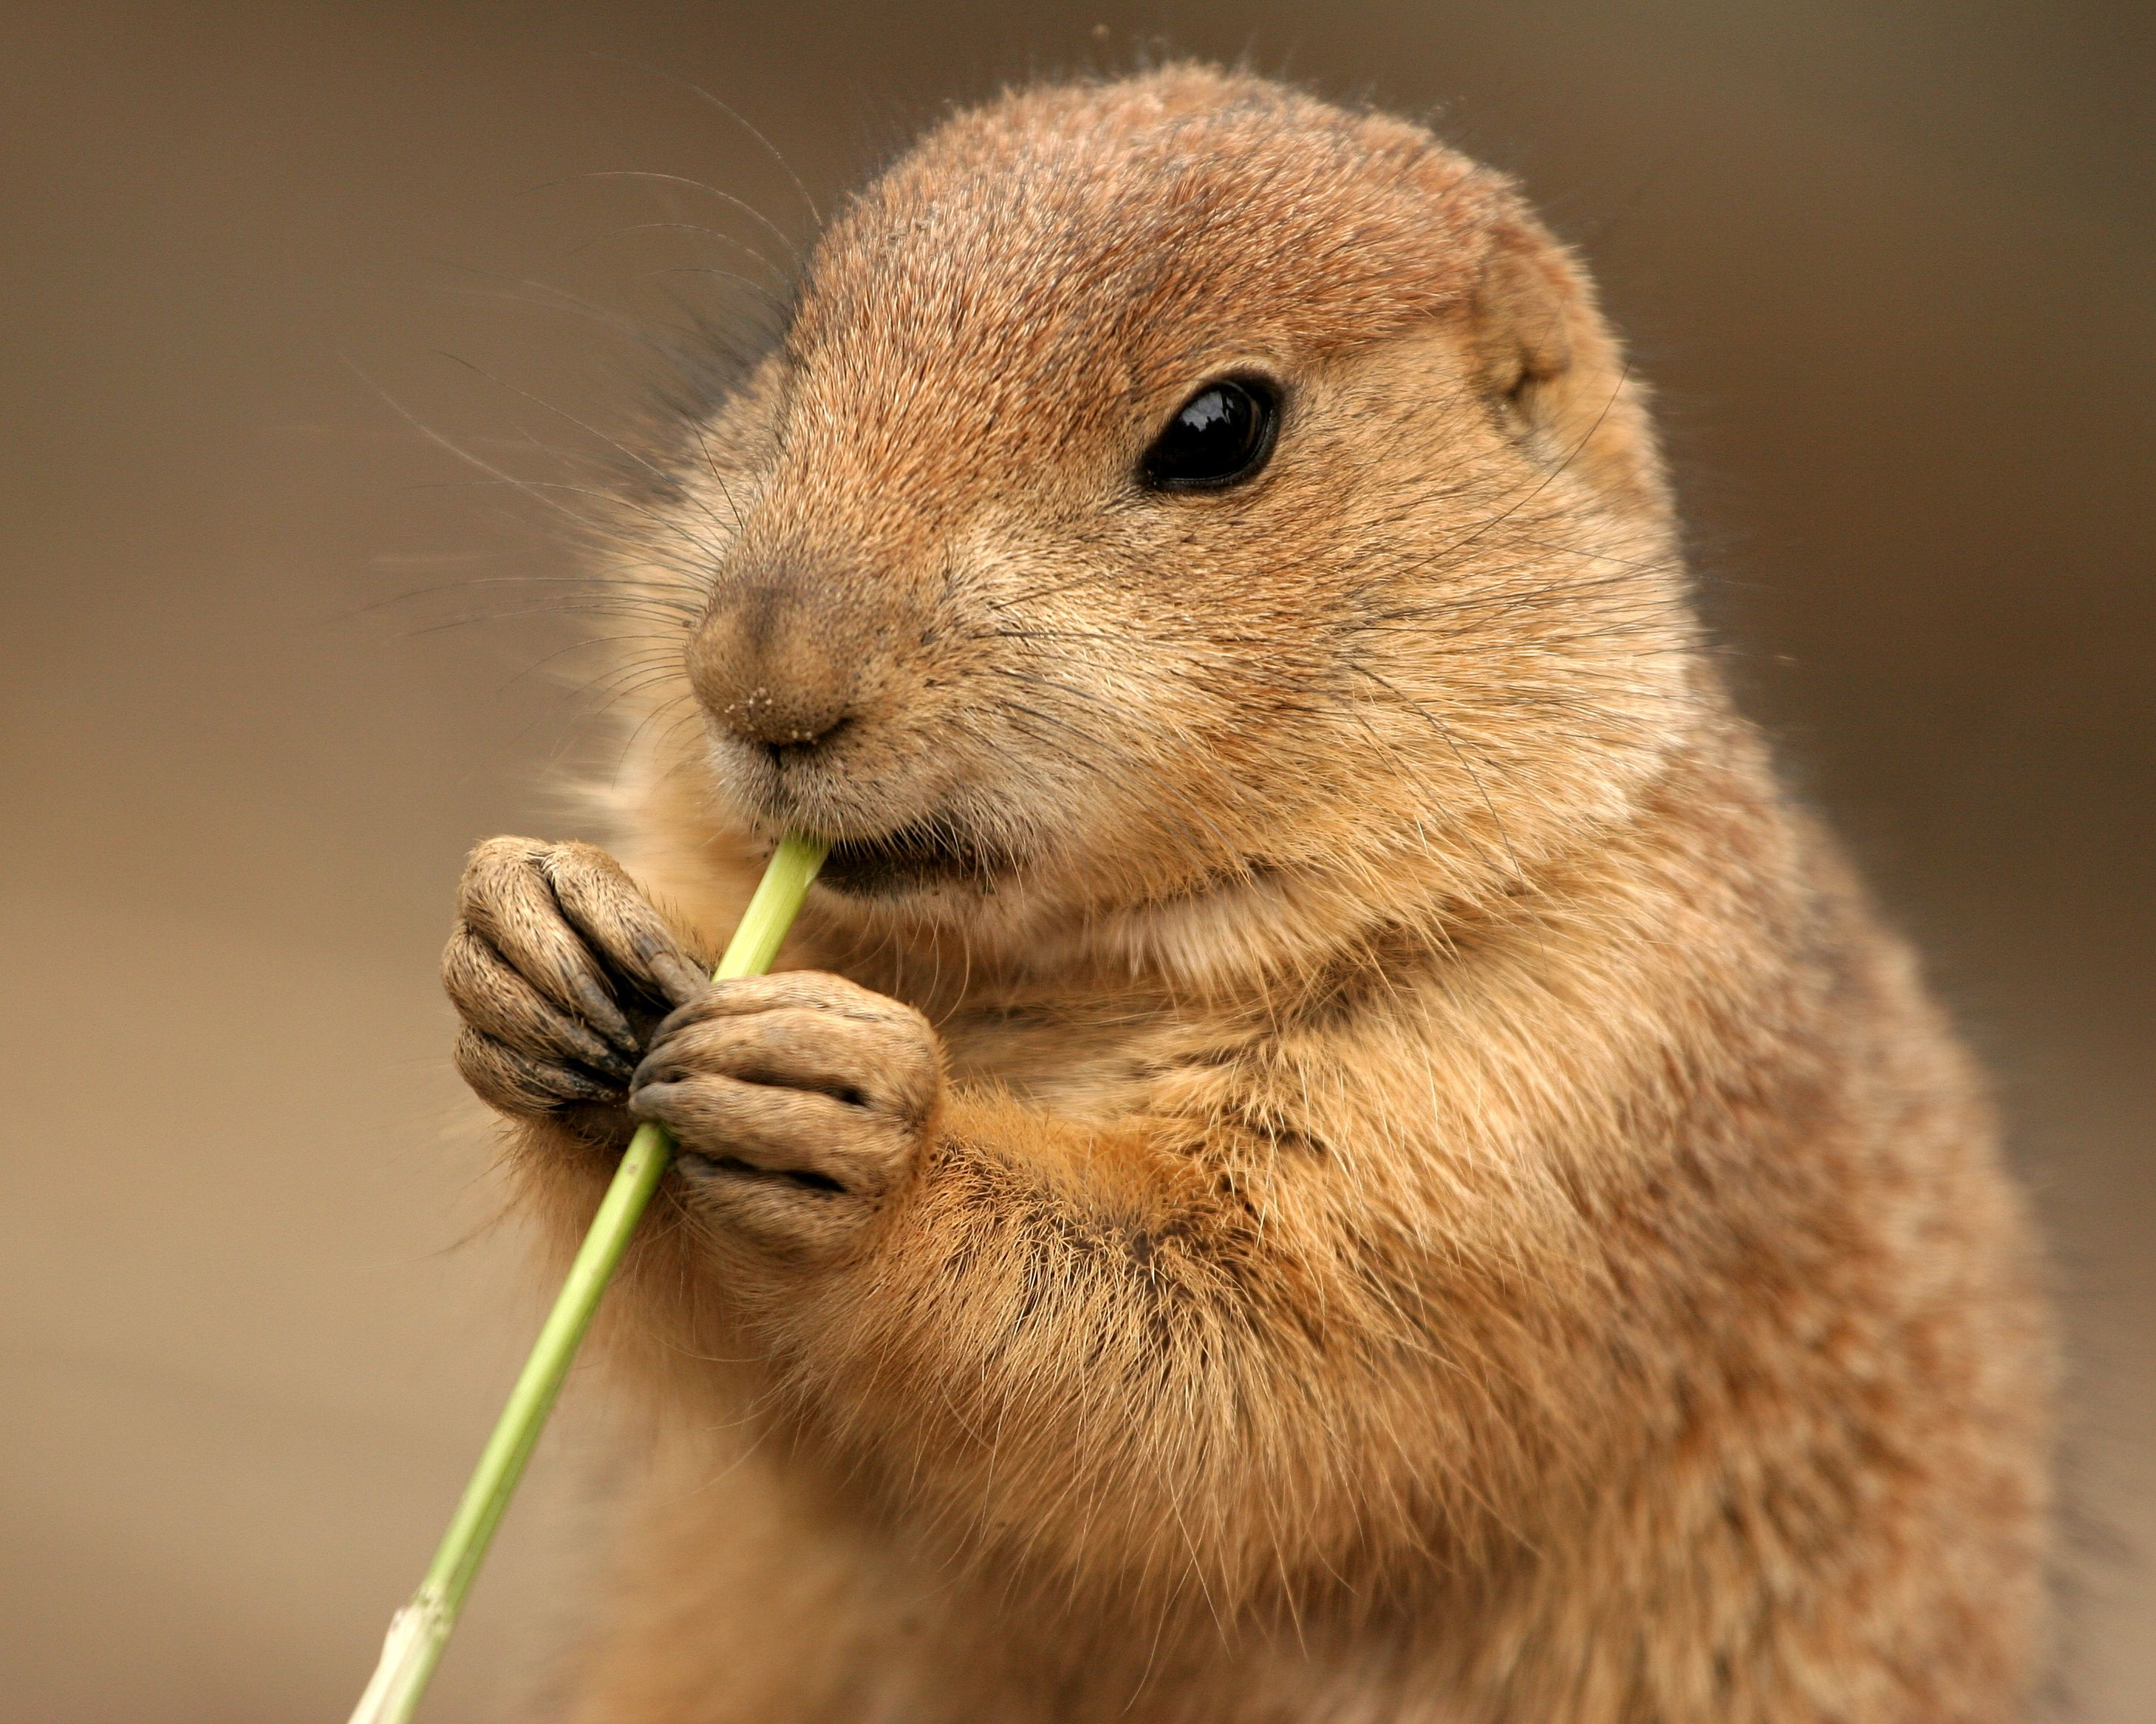 Pics For Gt Cute Prairie Dog Pet Cute Pictures Of Prairie Dogs